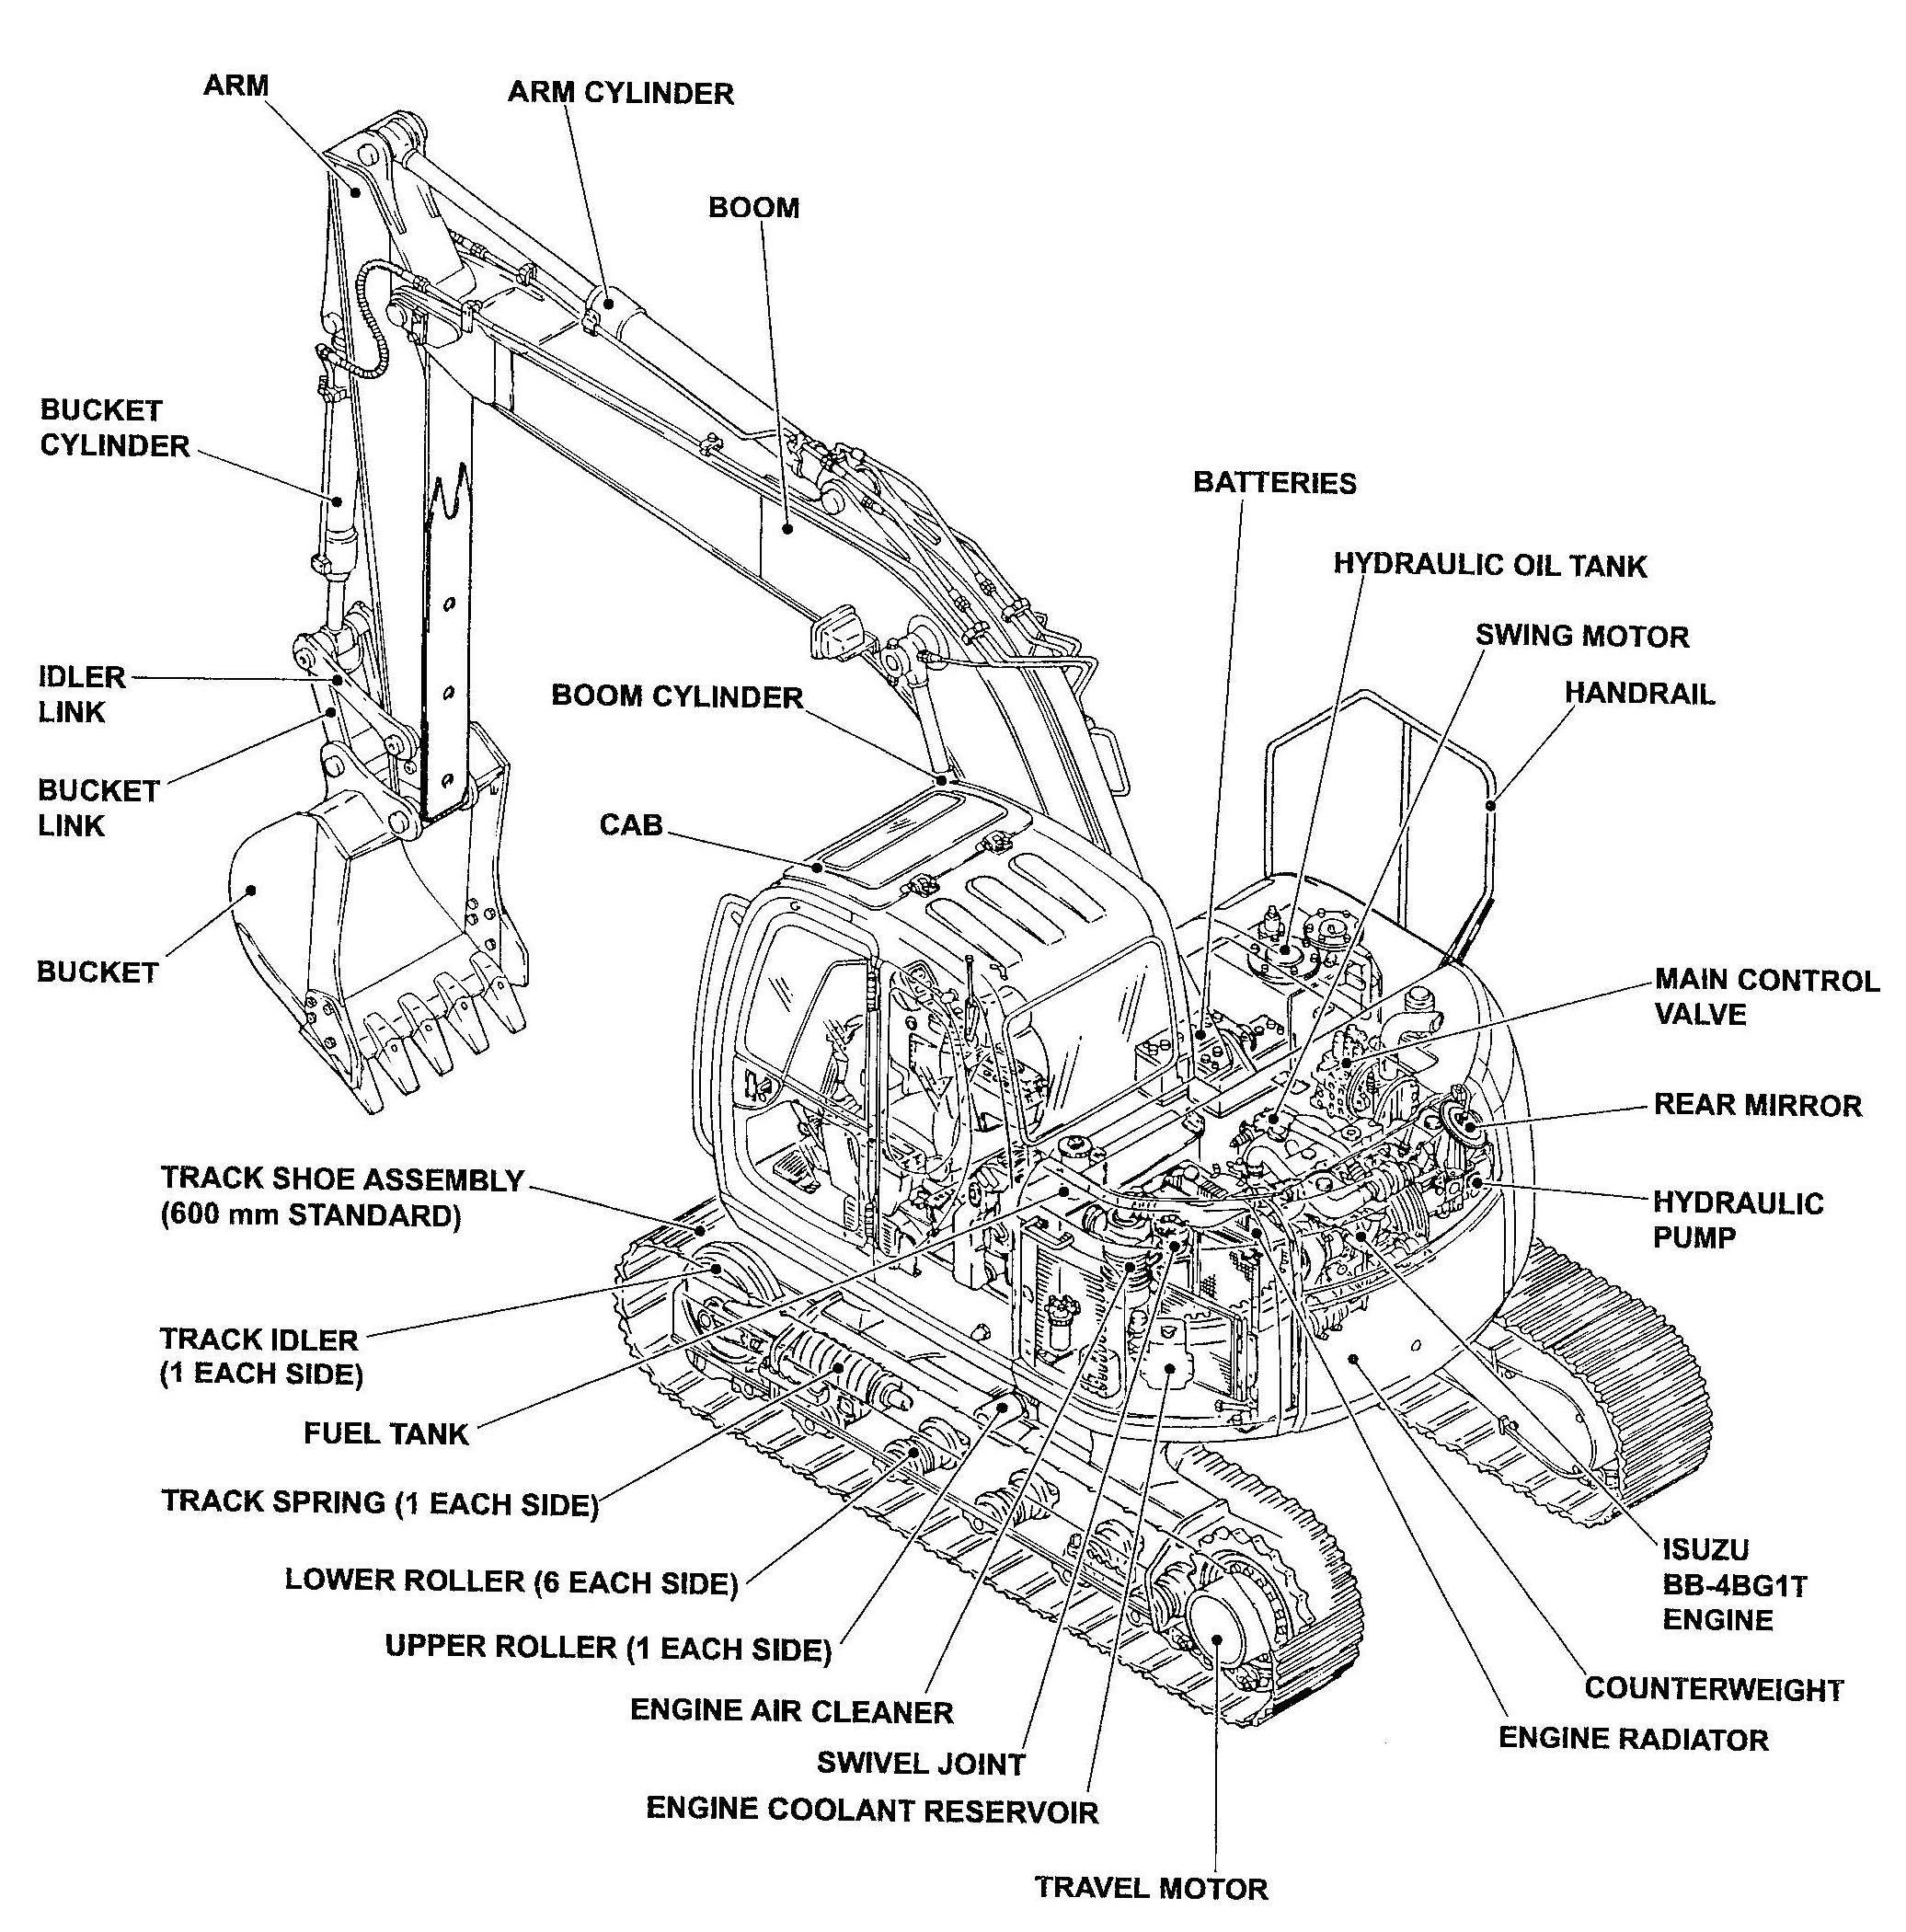 hight resolution of image result for crawler excavator diagram volvo diagram cars and motorcycles craft projects